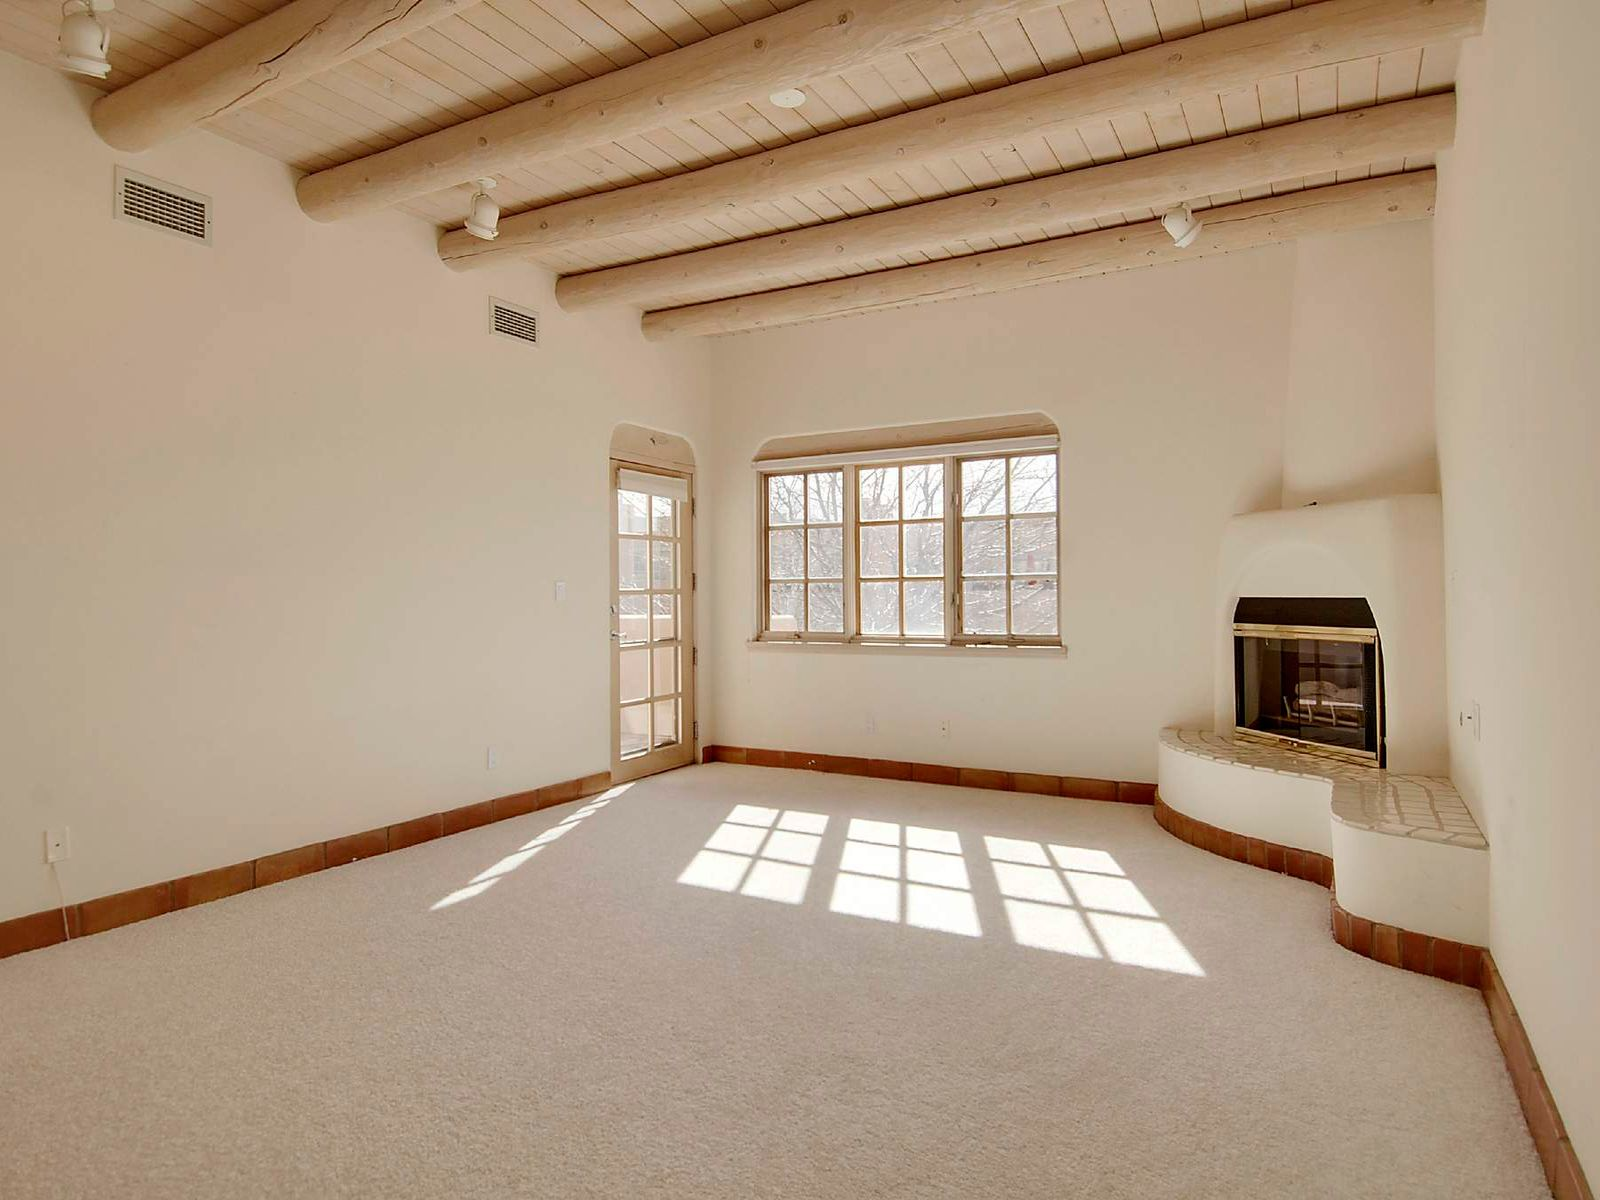 3101 Old Pecos Trail #204, Santa Fe NM Condominium - Santa Fe Real Estate